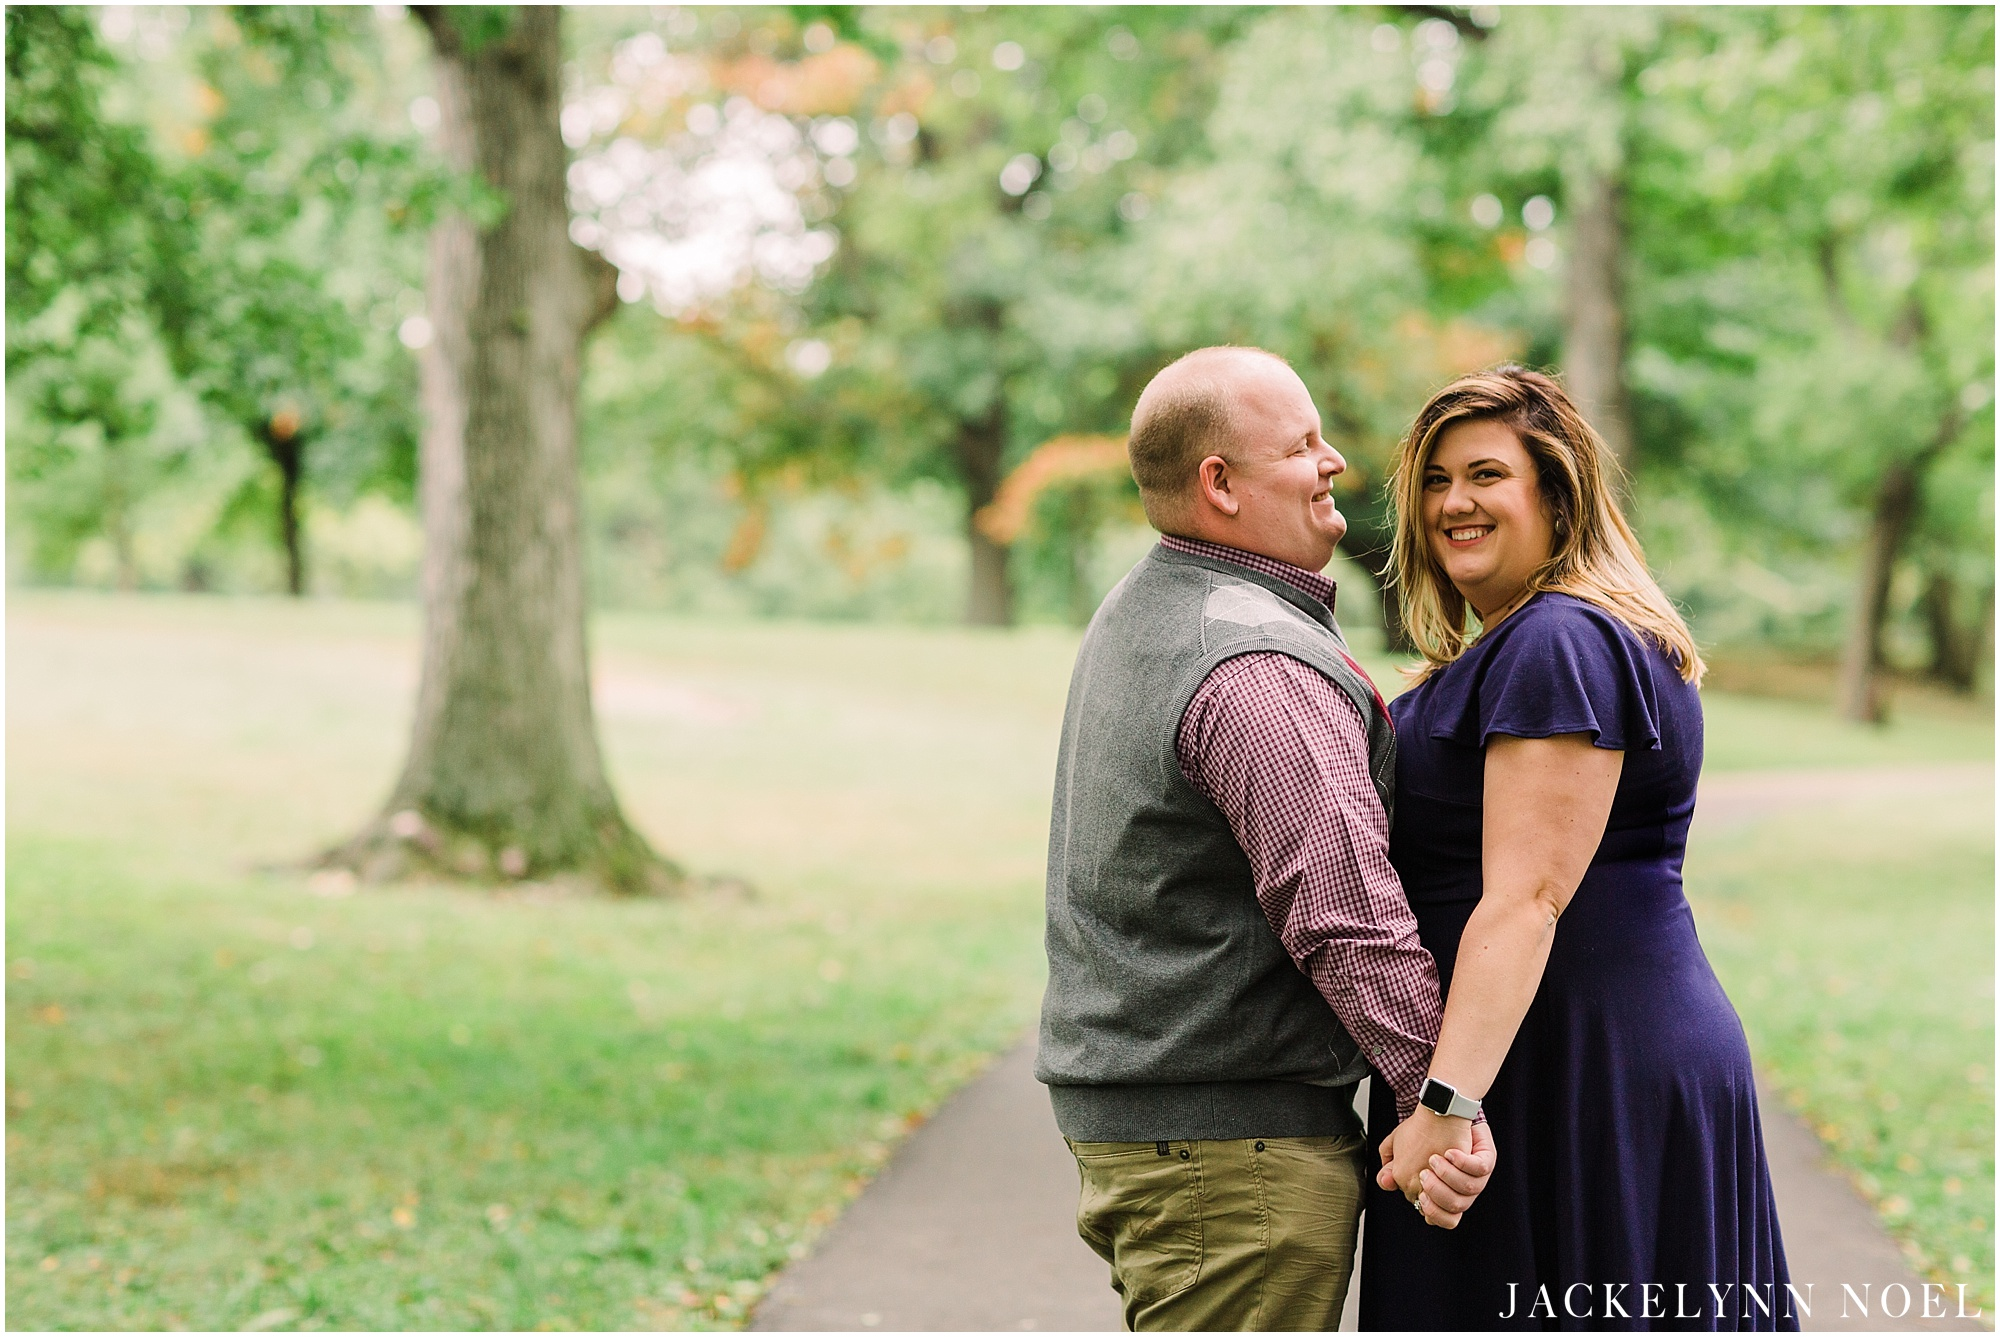 Heather & Tyler Engagement Session at Lafayette Park by Jackelynn Noel Photography